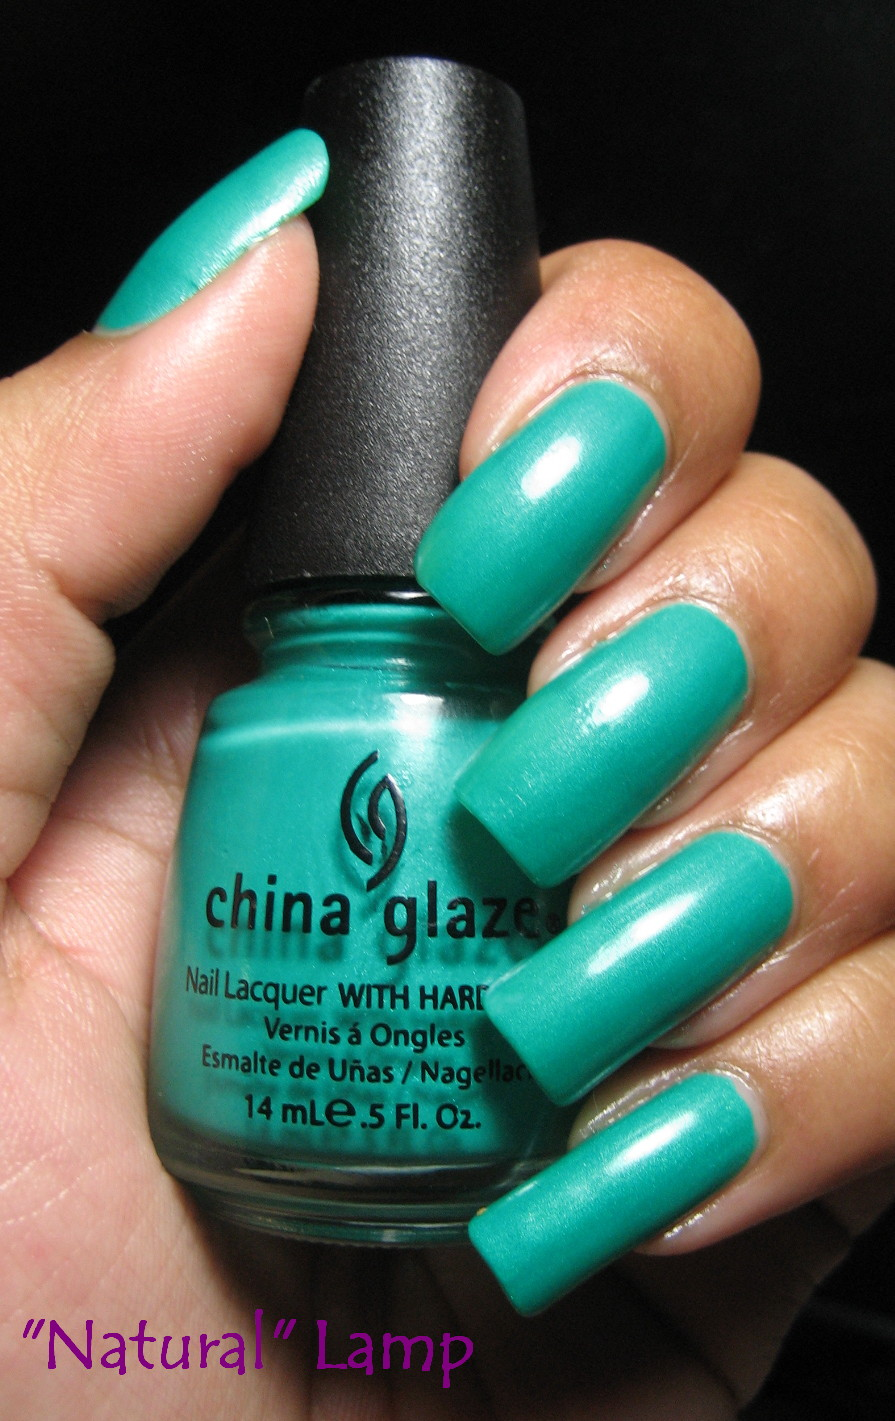 My Simple Little Pleasures: NOTD: China Glaze Turned Up Turquoise + ...